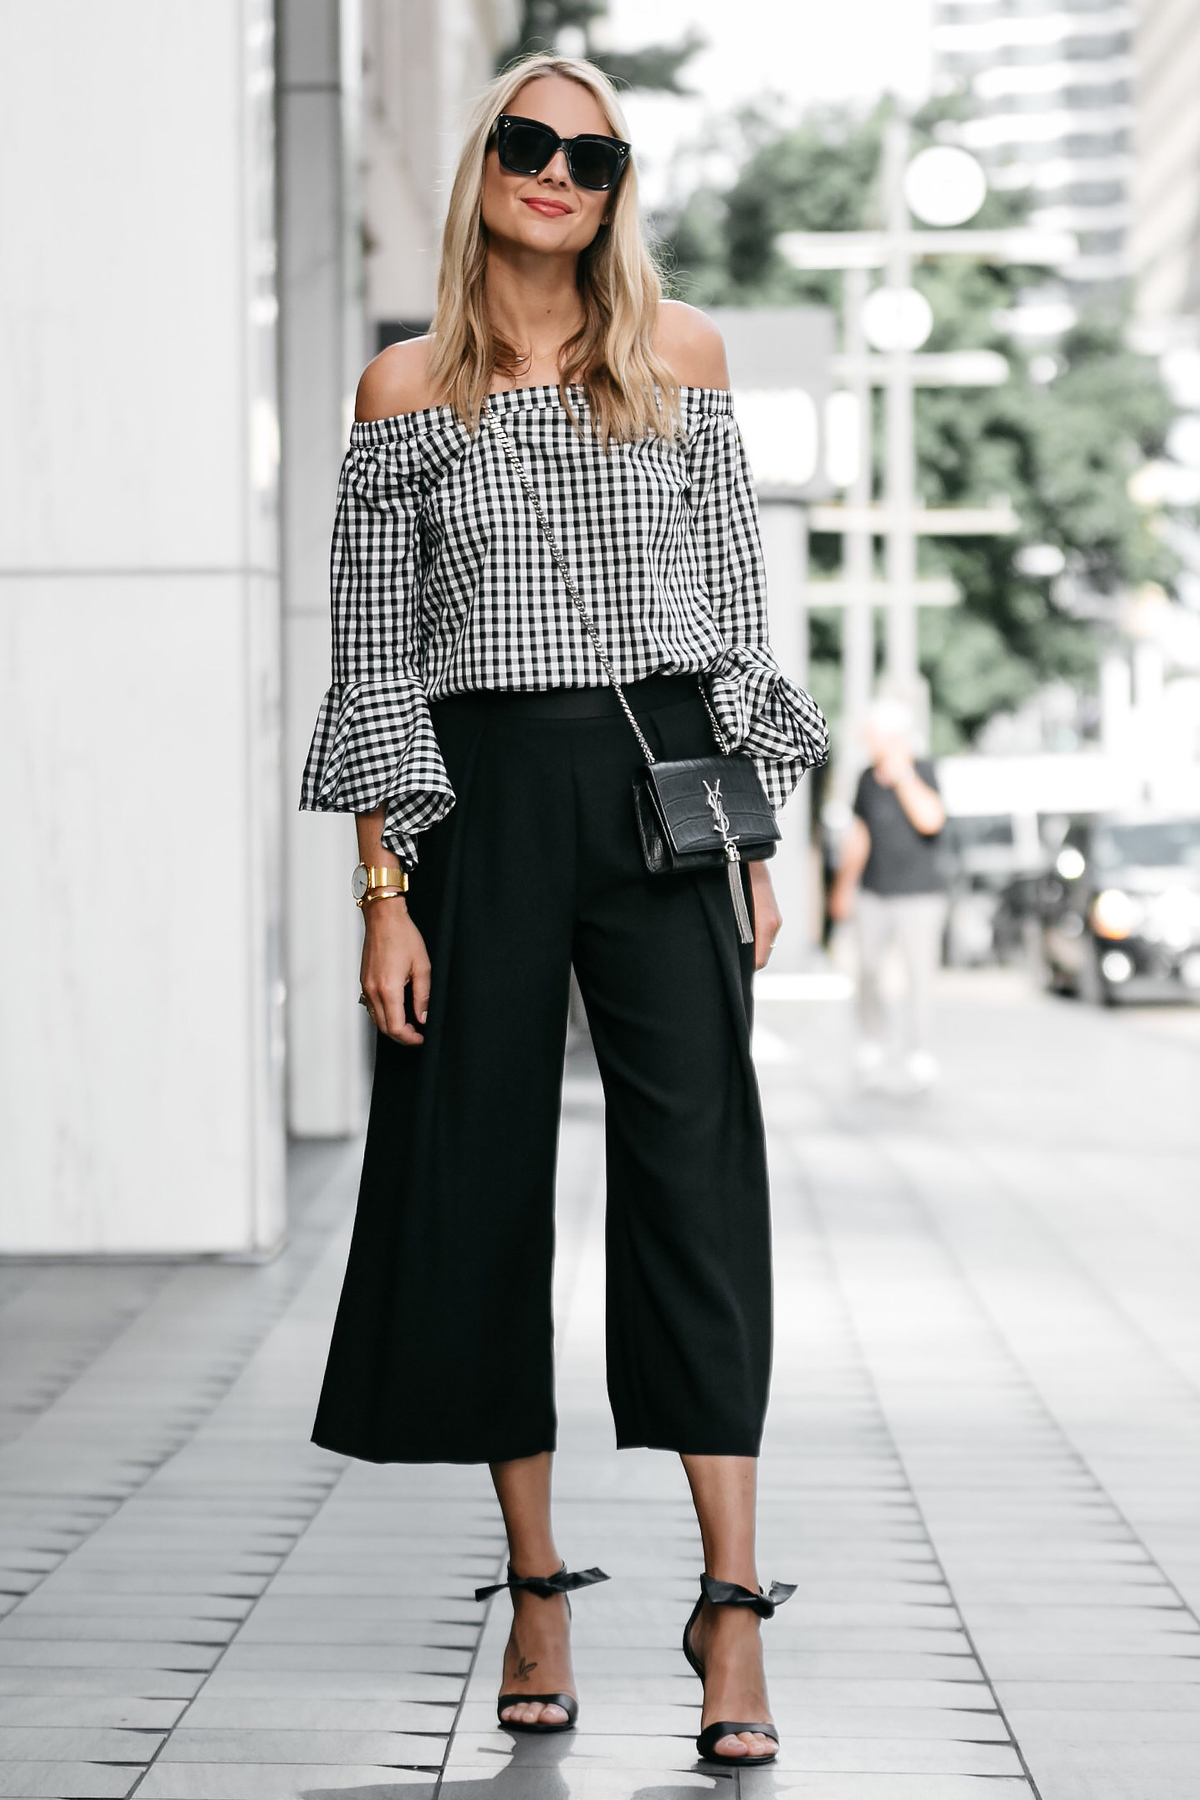 Blonde woman wearing nordstrom gingham off-the-shoulder top topshop black culottes outfit black bow heels ysl crossbody street style dallas blogger fashion blogger